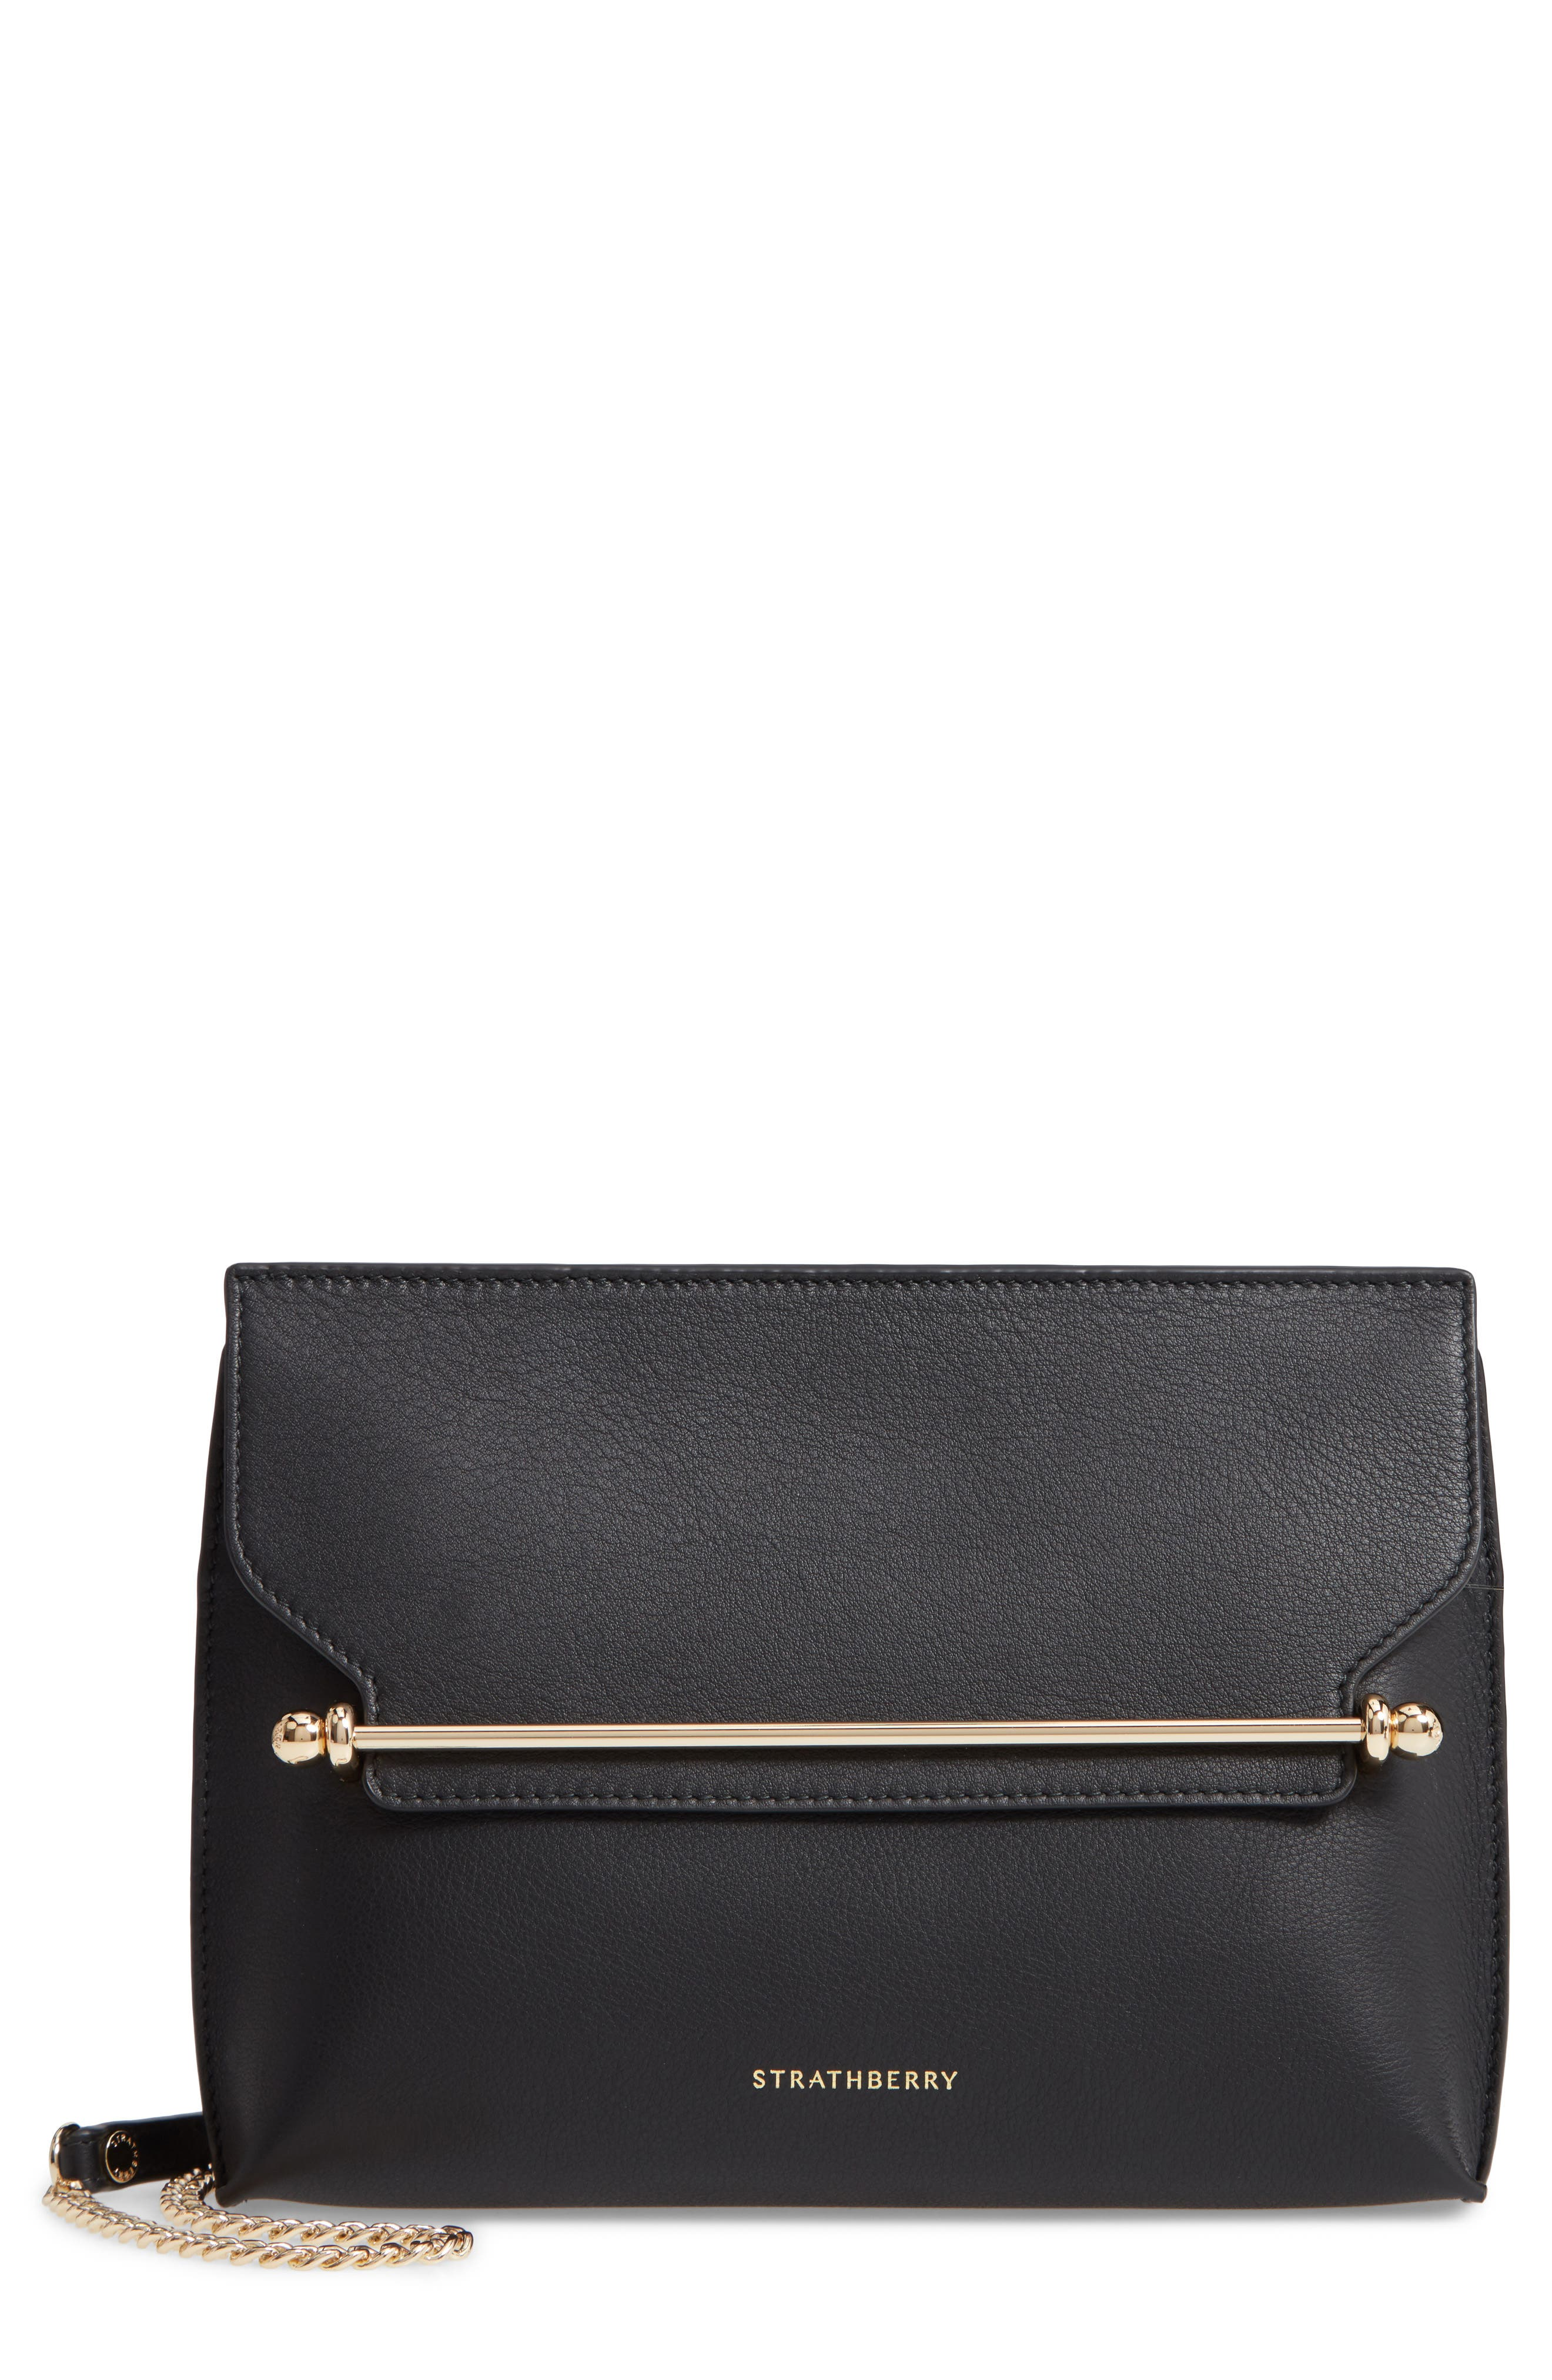 STRATHBERRY, East/West Stylist Calfskin Leather Clutch, Main thumbnail 1, color, BLACK